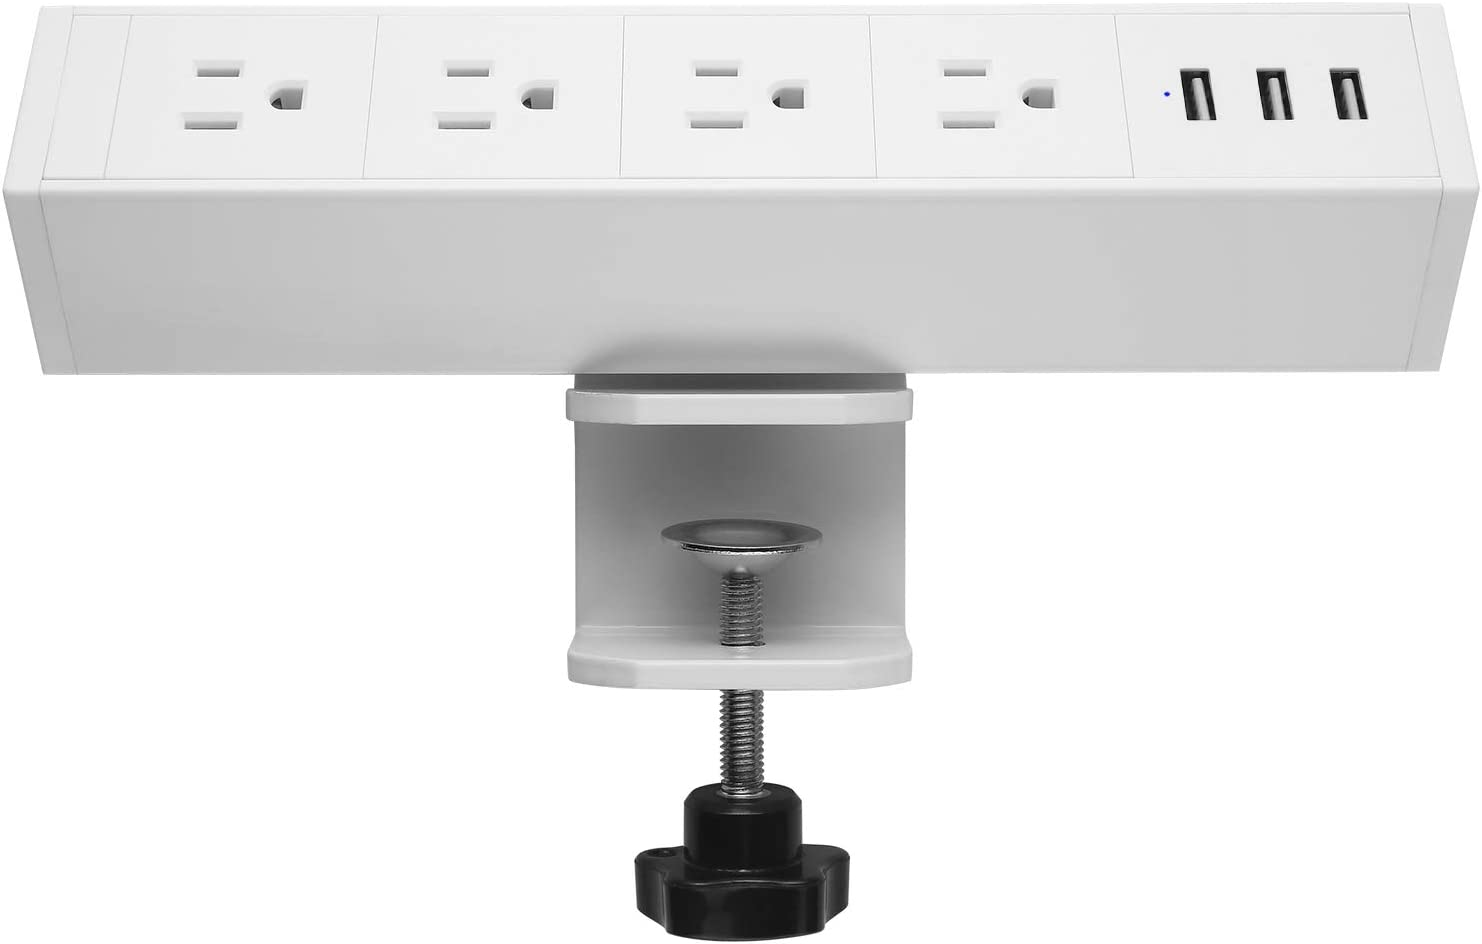 CCCEI Metal Desk Mount Clamp Power Strip, 4 Outlet Power Strip with USB Ports, 380J Surge Protector Desktop Outlet, Fit 1.8 inch Tabletop Edge Thick. 6FT Power Cord. (White)